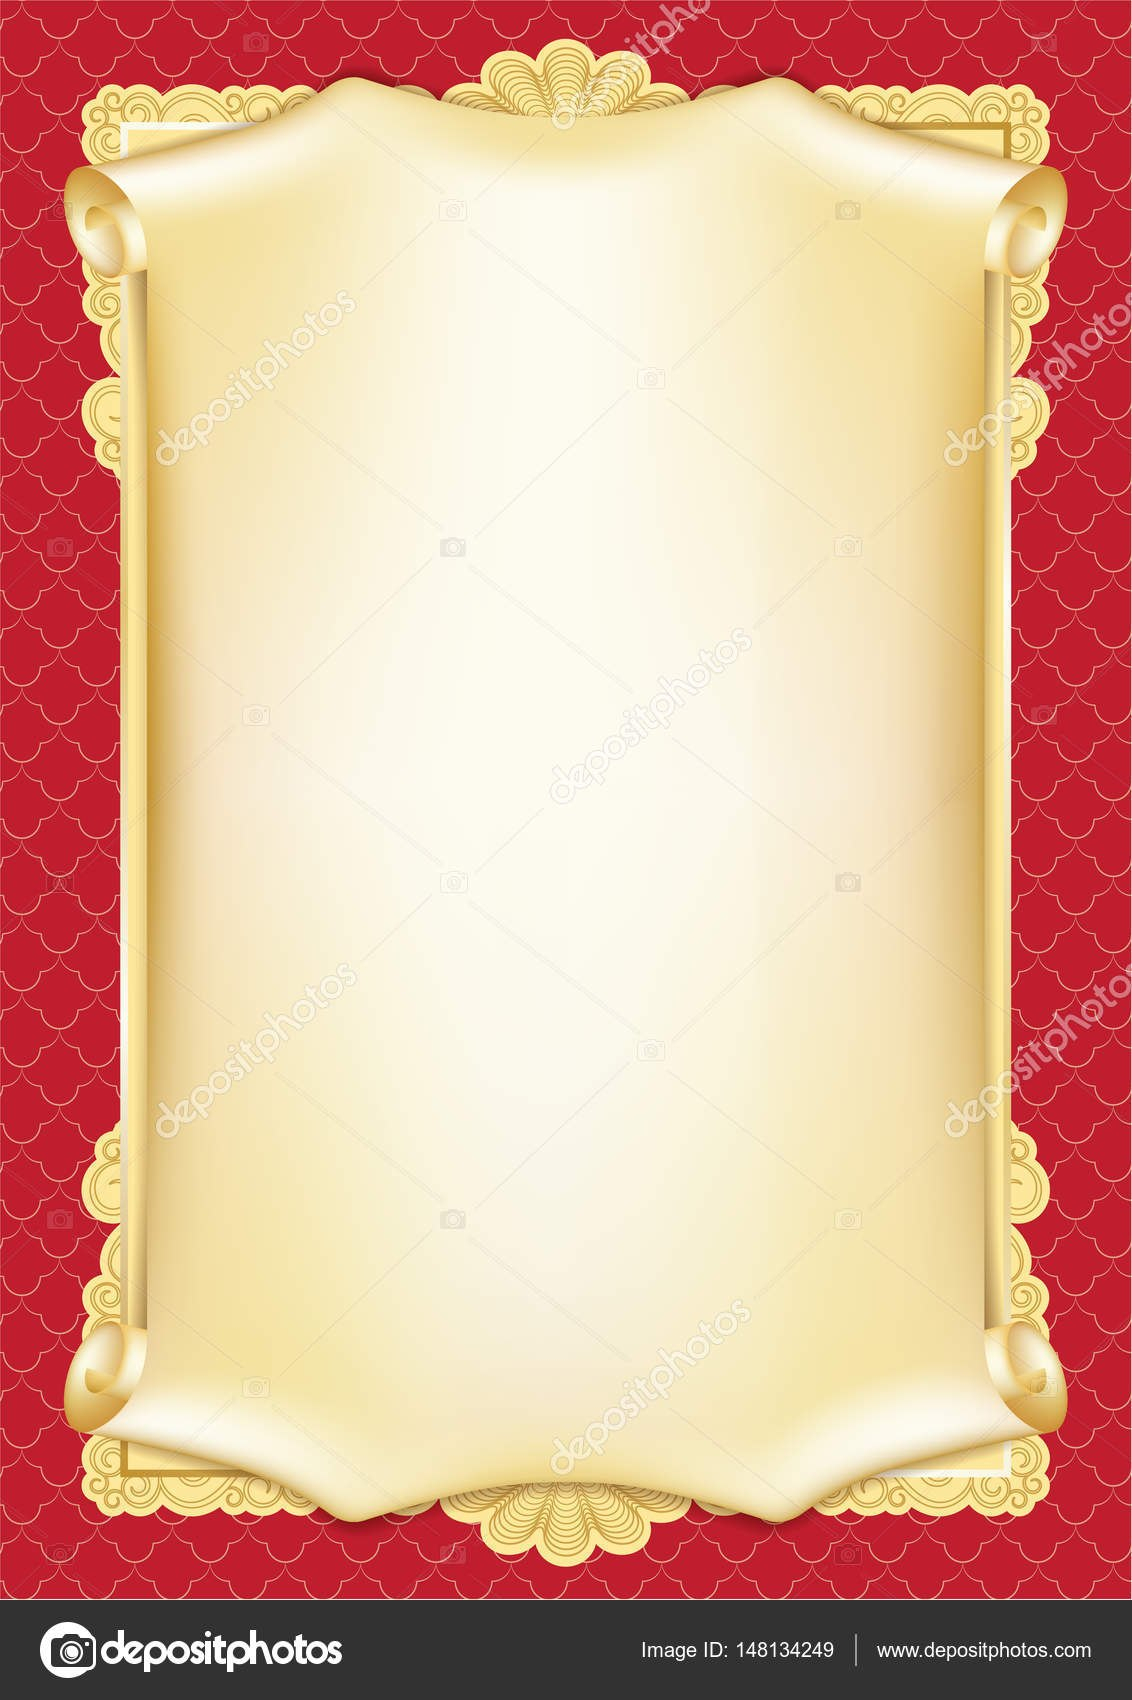 Template For Diploma Certificate Card With Scroll And Decorative Regarding Certificate Scroll Template